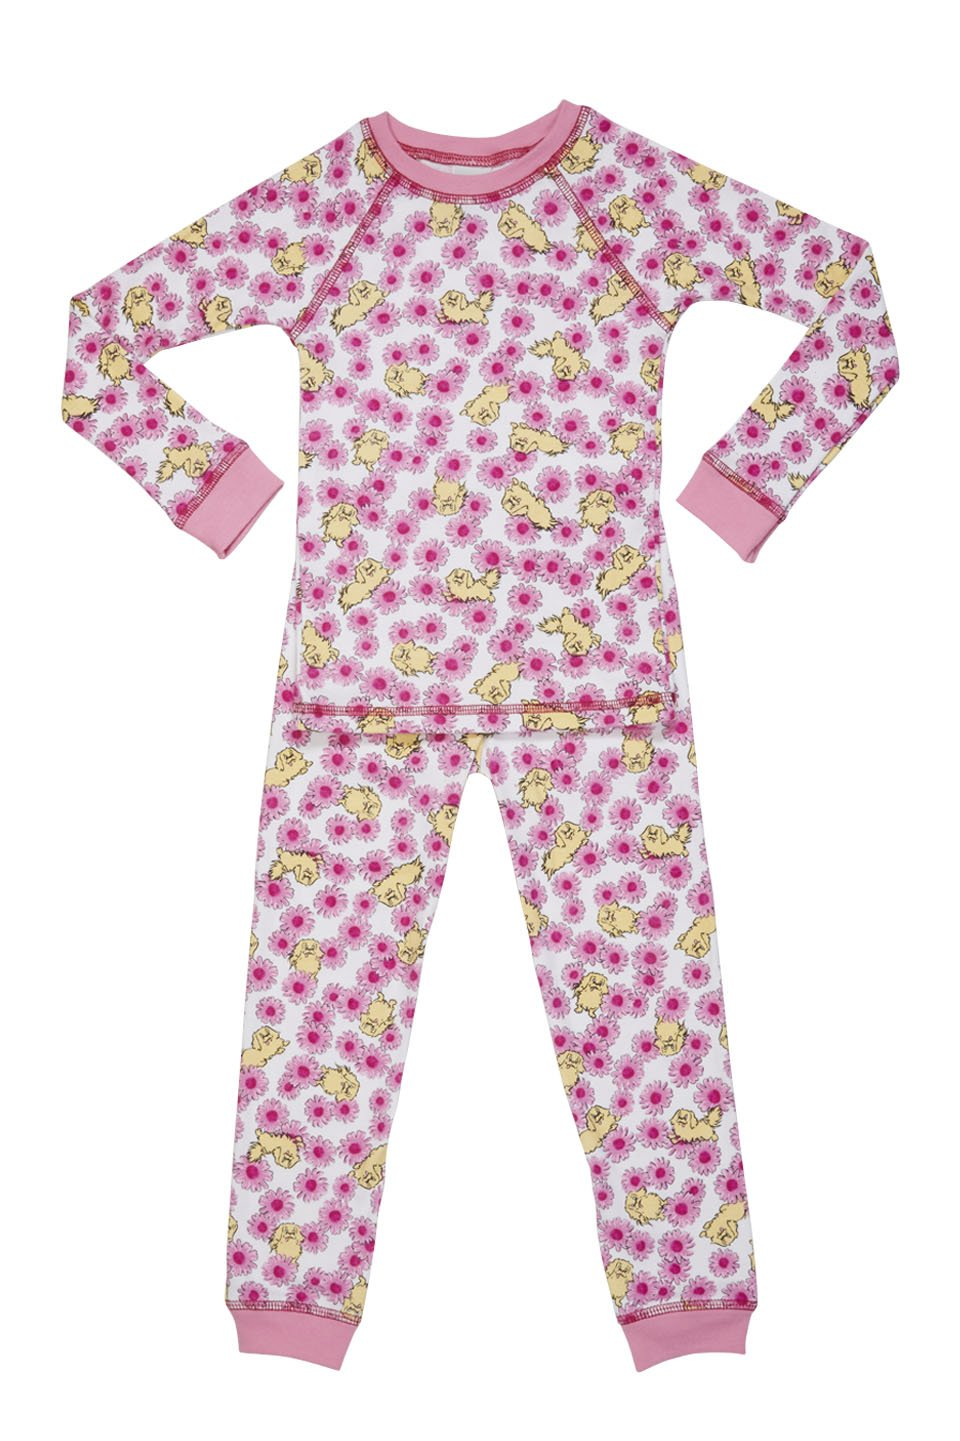 Organic children pajamas with pink daisies